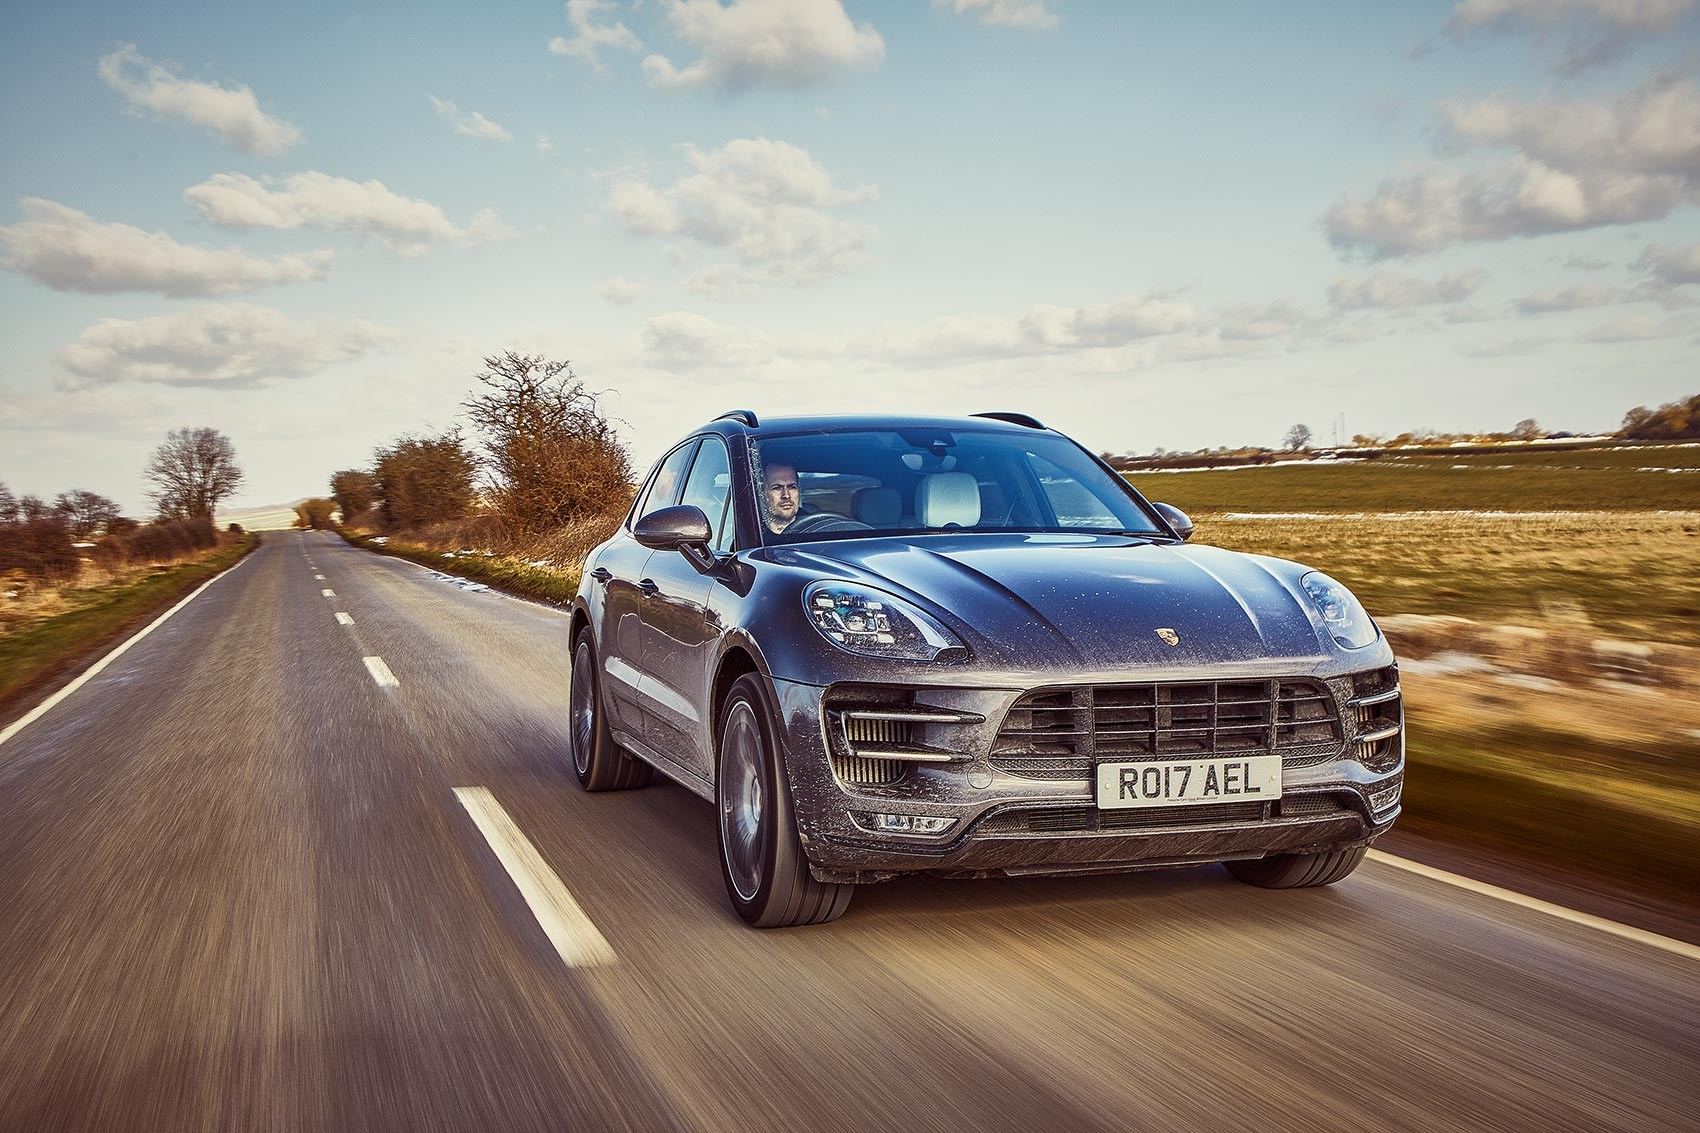 Which Performance Suv Would You Pick Stevlio Or Macan